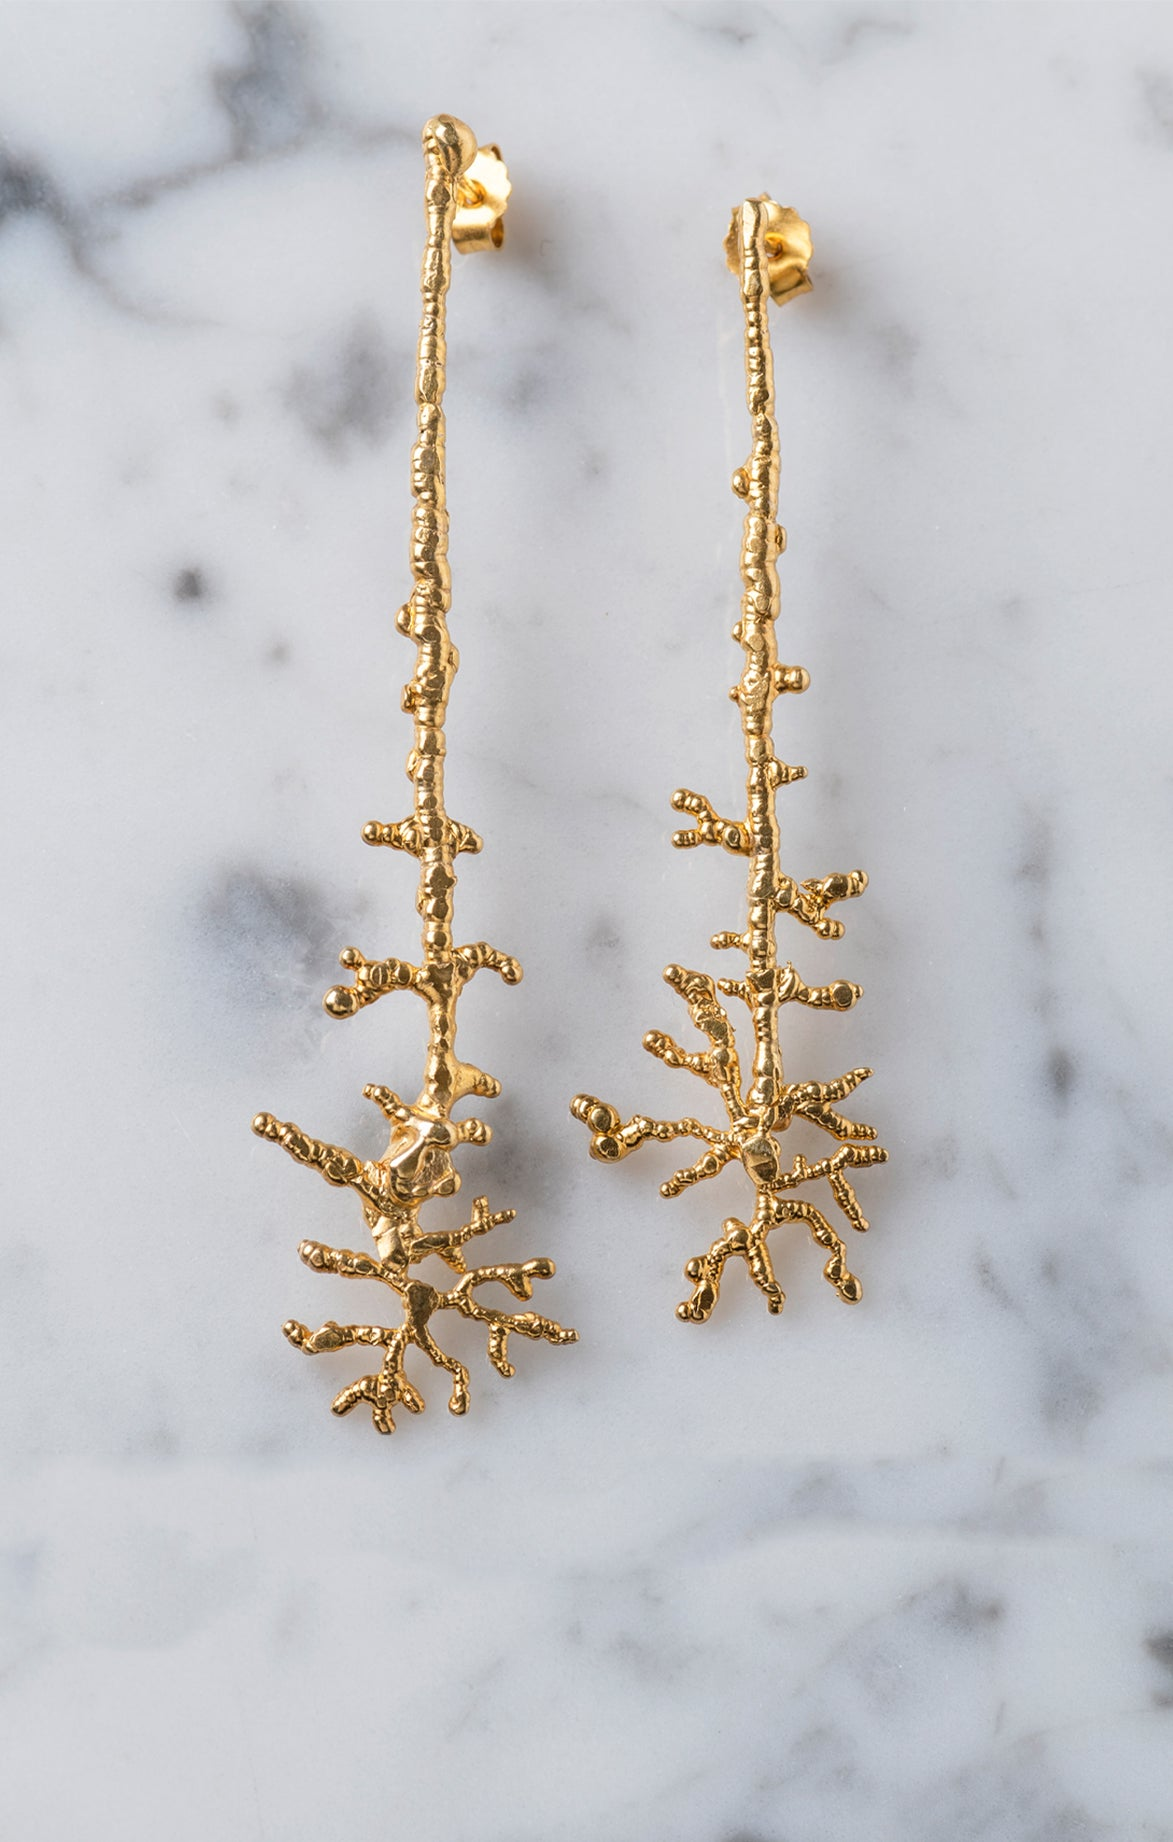 Millepora Earrings Gold plated 24k